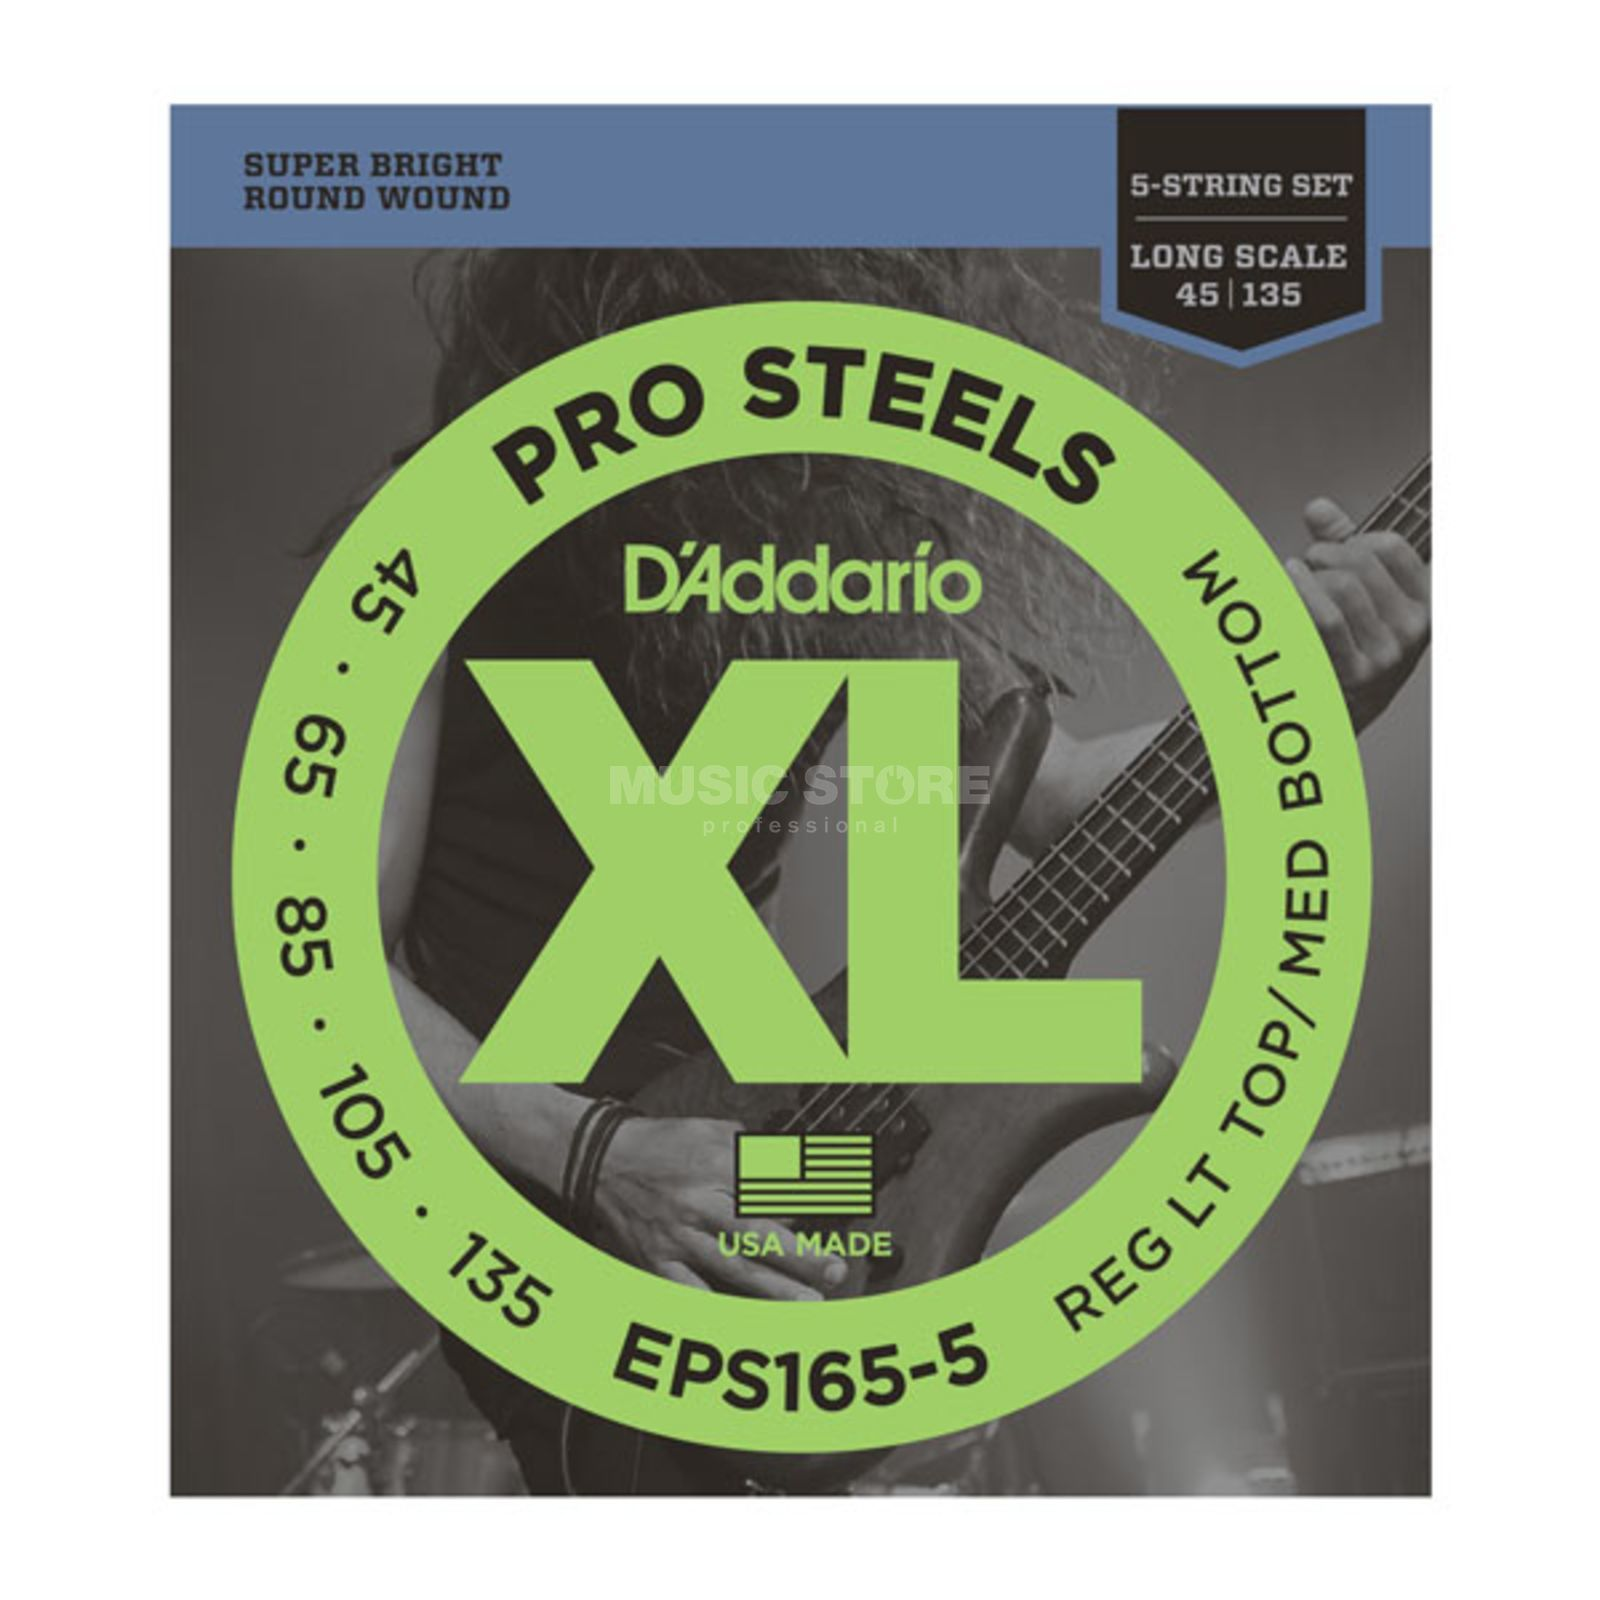 D'Addario Bass Strings Pro Steels 45-135 45-65-85-105-135, EPS165-5 Product Image